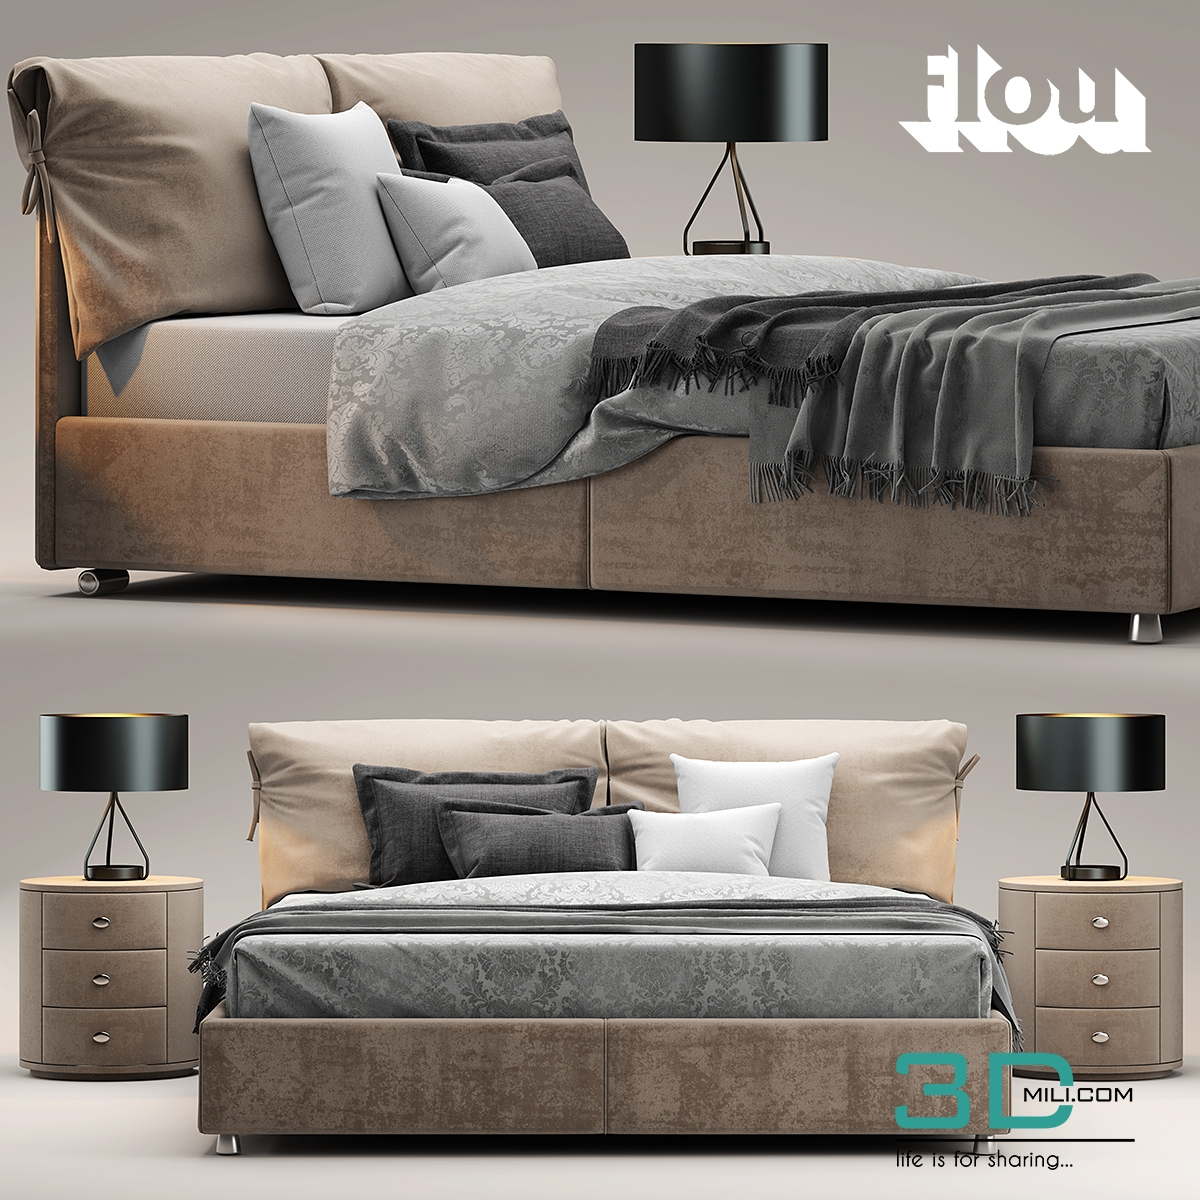 94. Bed flou Letto Nathalie - 3D Mili - Download 3D Model - Free 3D ...